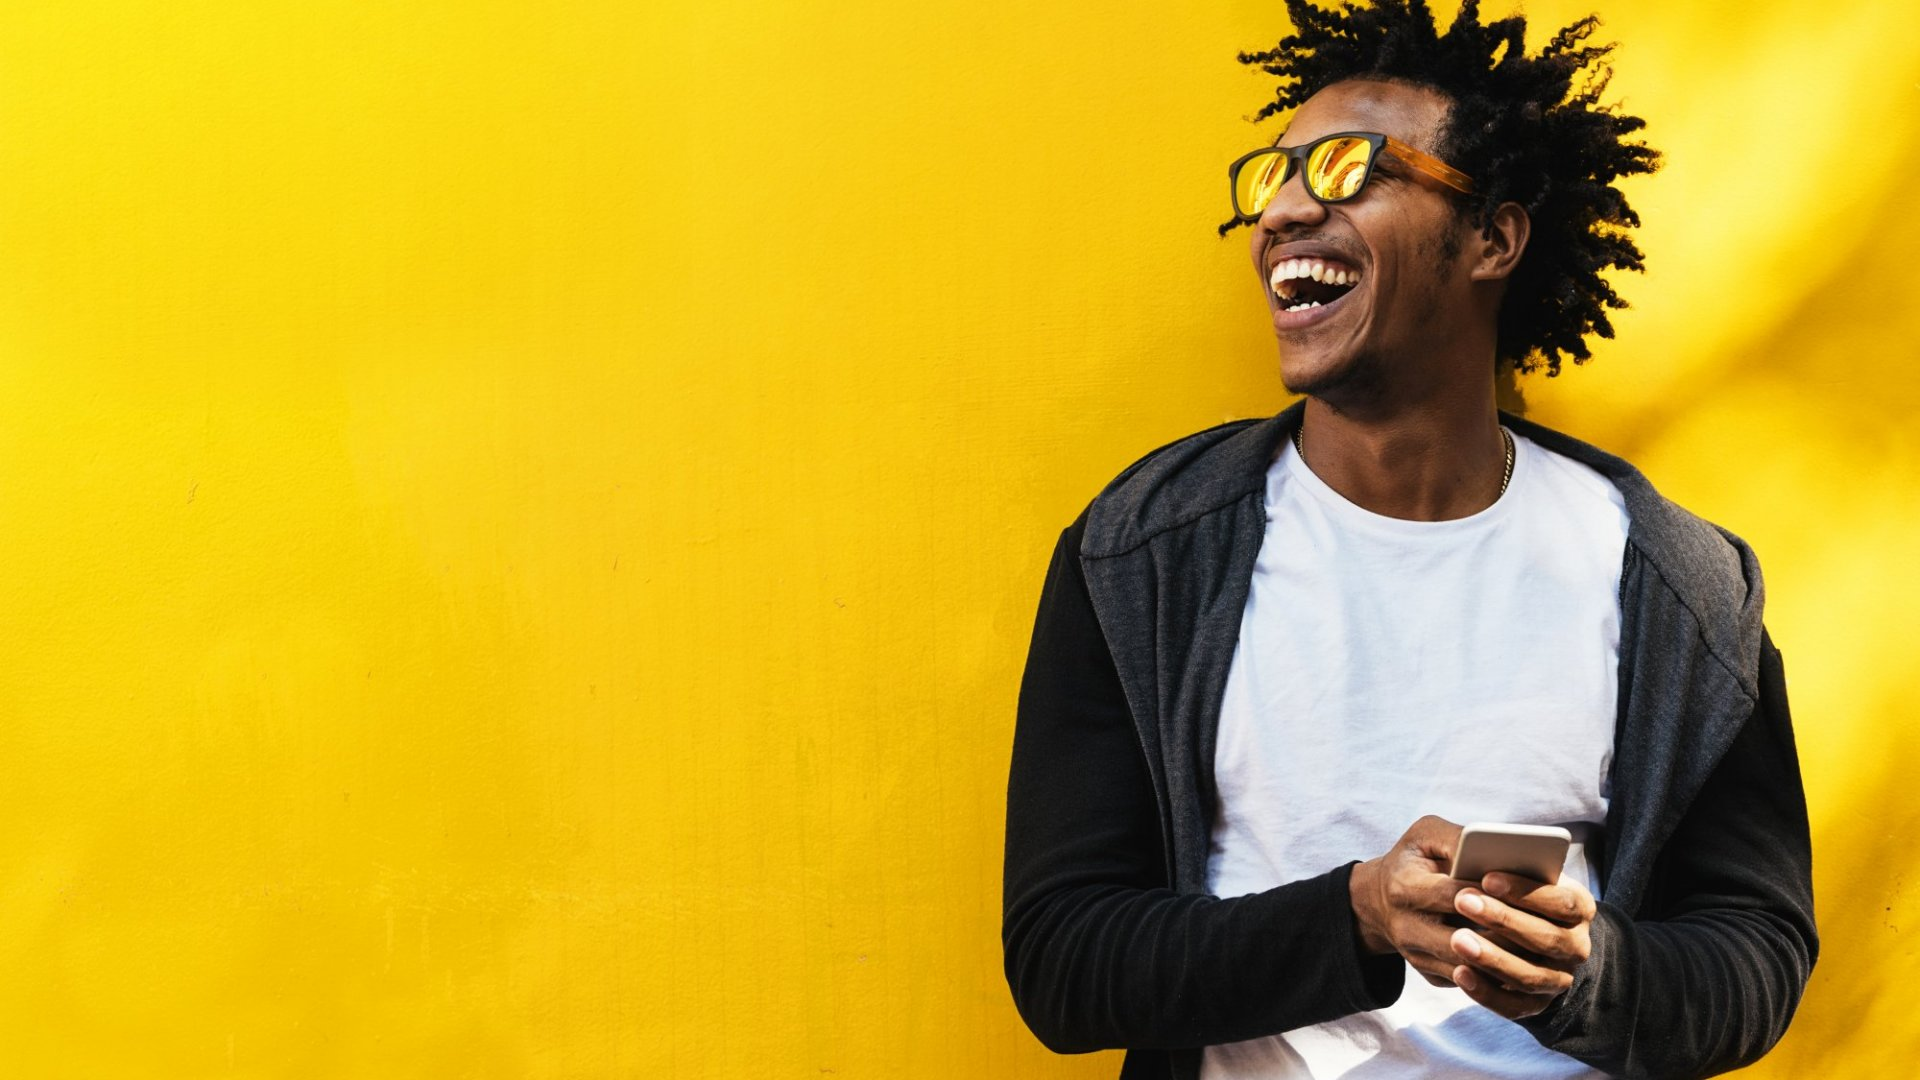 Want to be Happy? Find The Things That Give You Joy